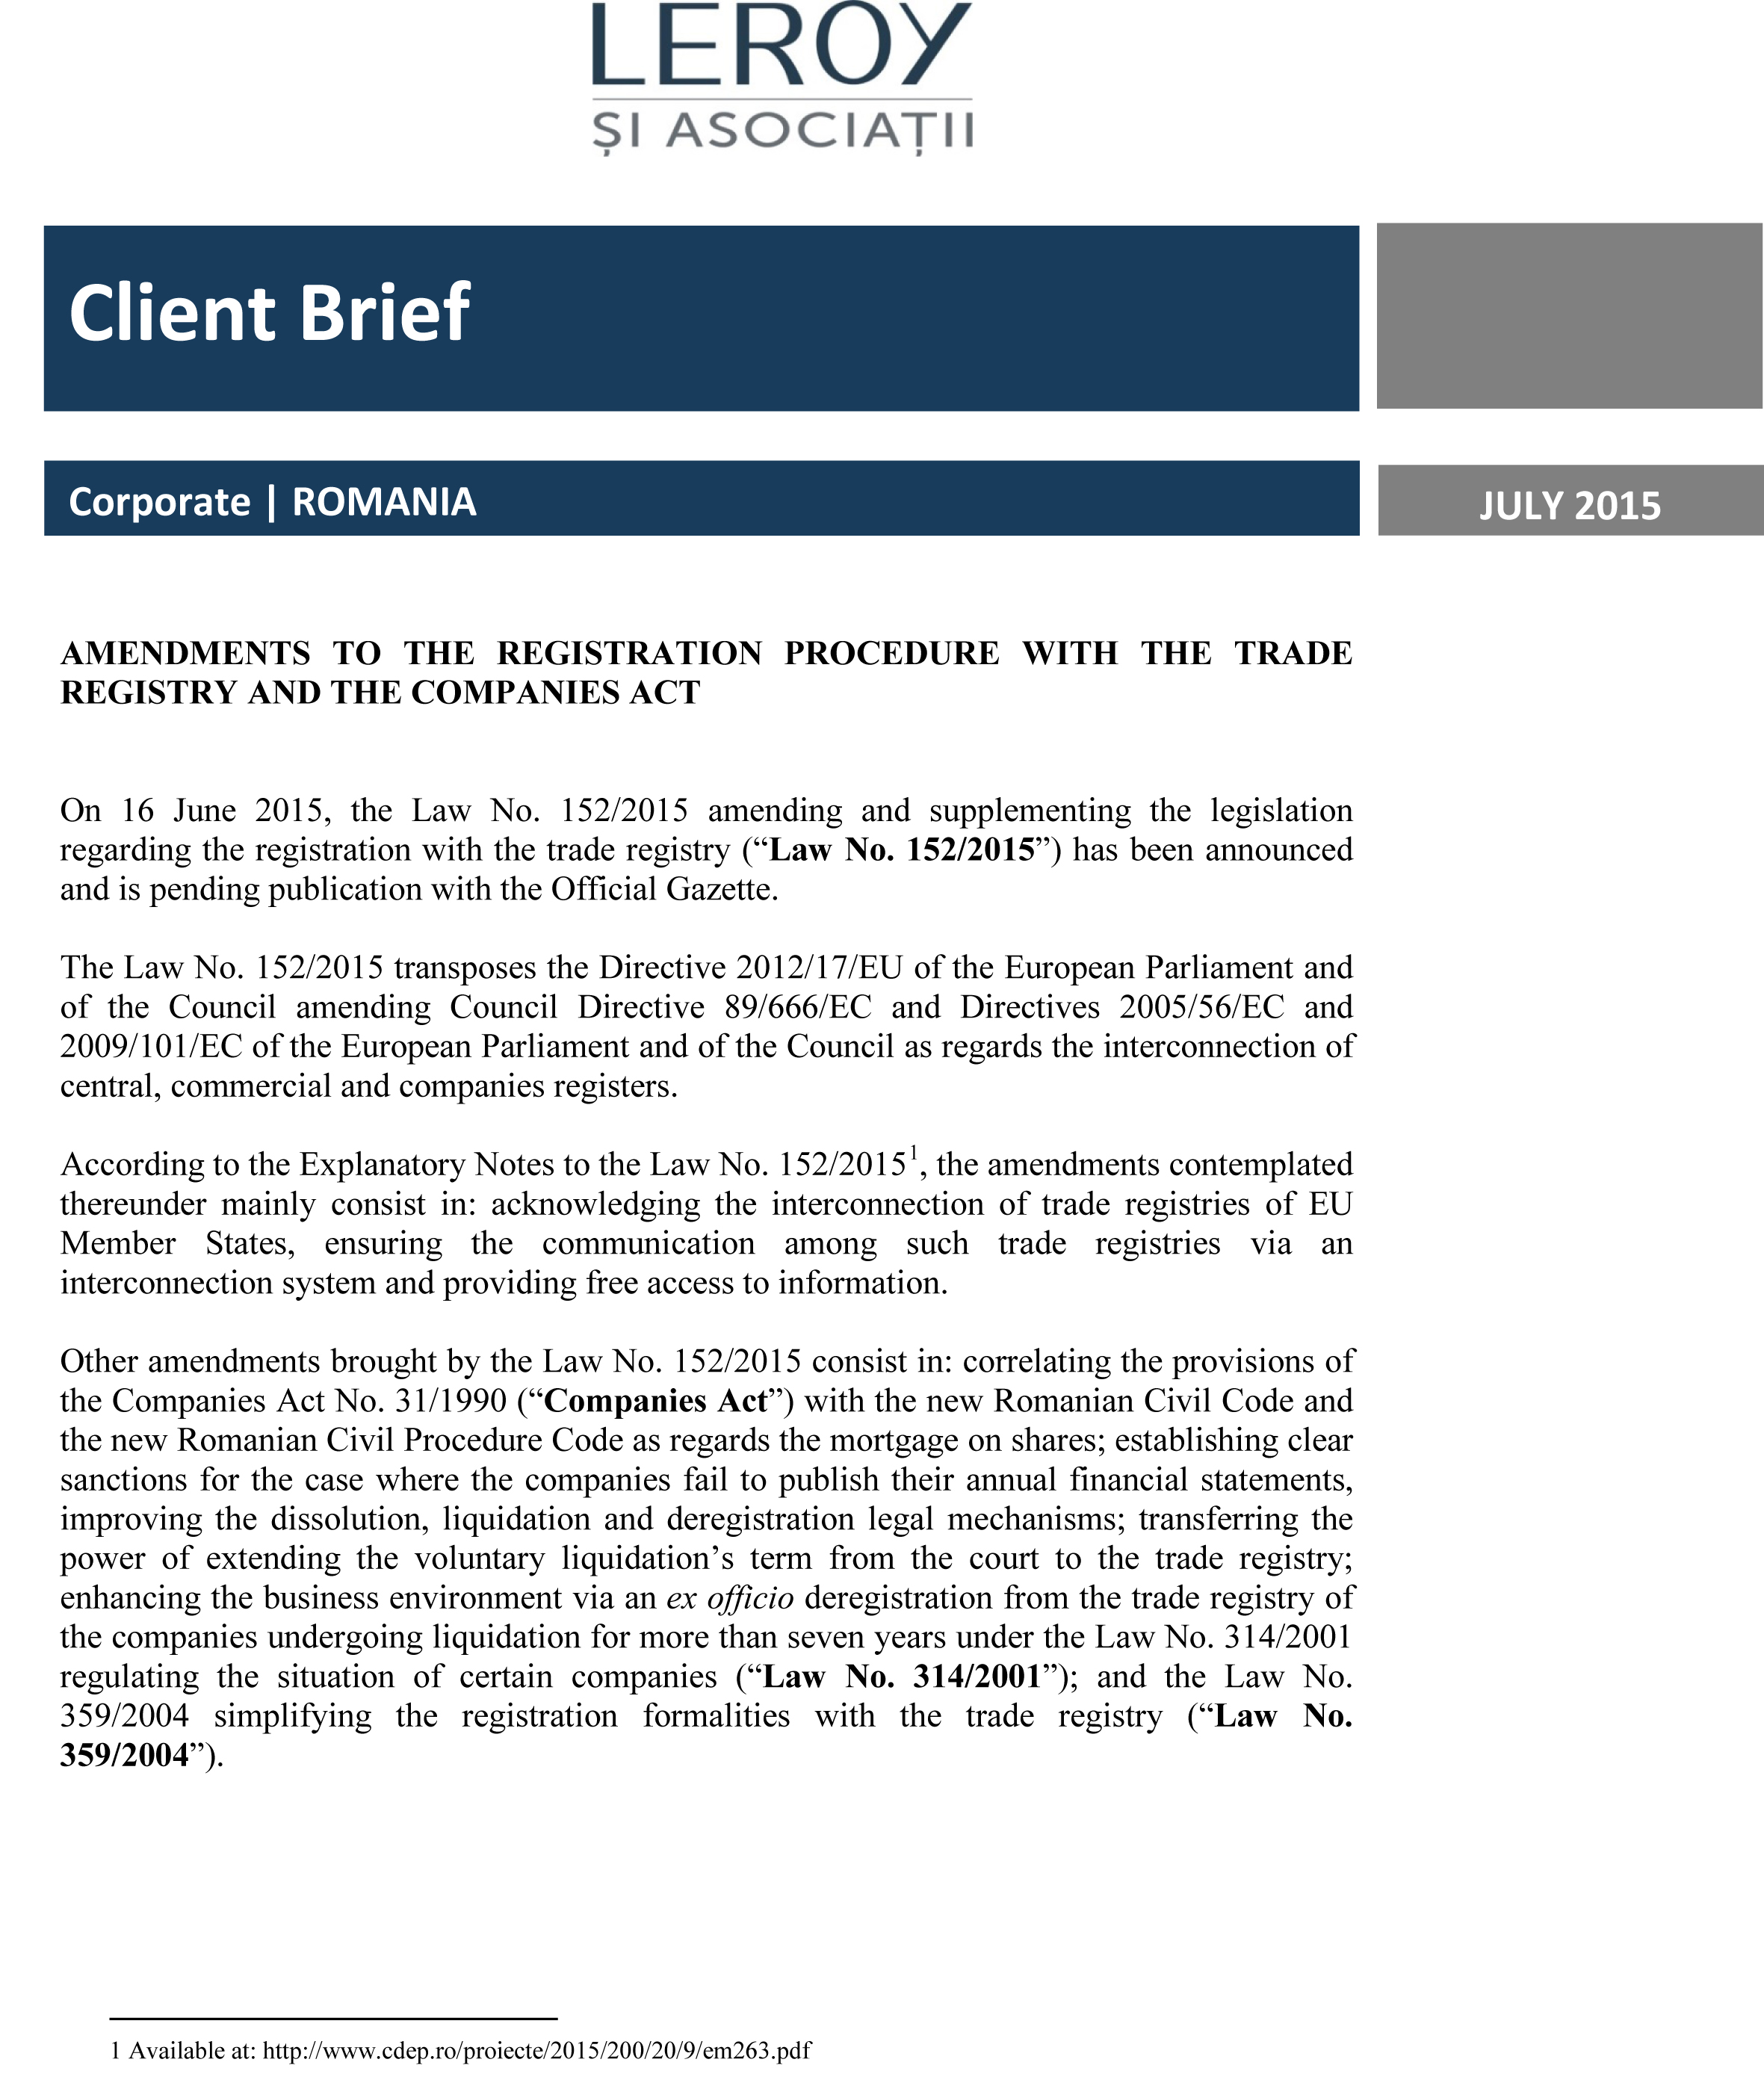 Amendments to the registration procedure with the Trade Registry and the Companies Act